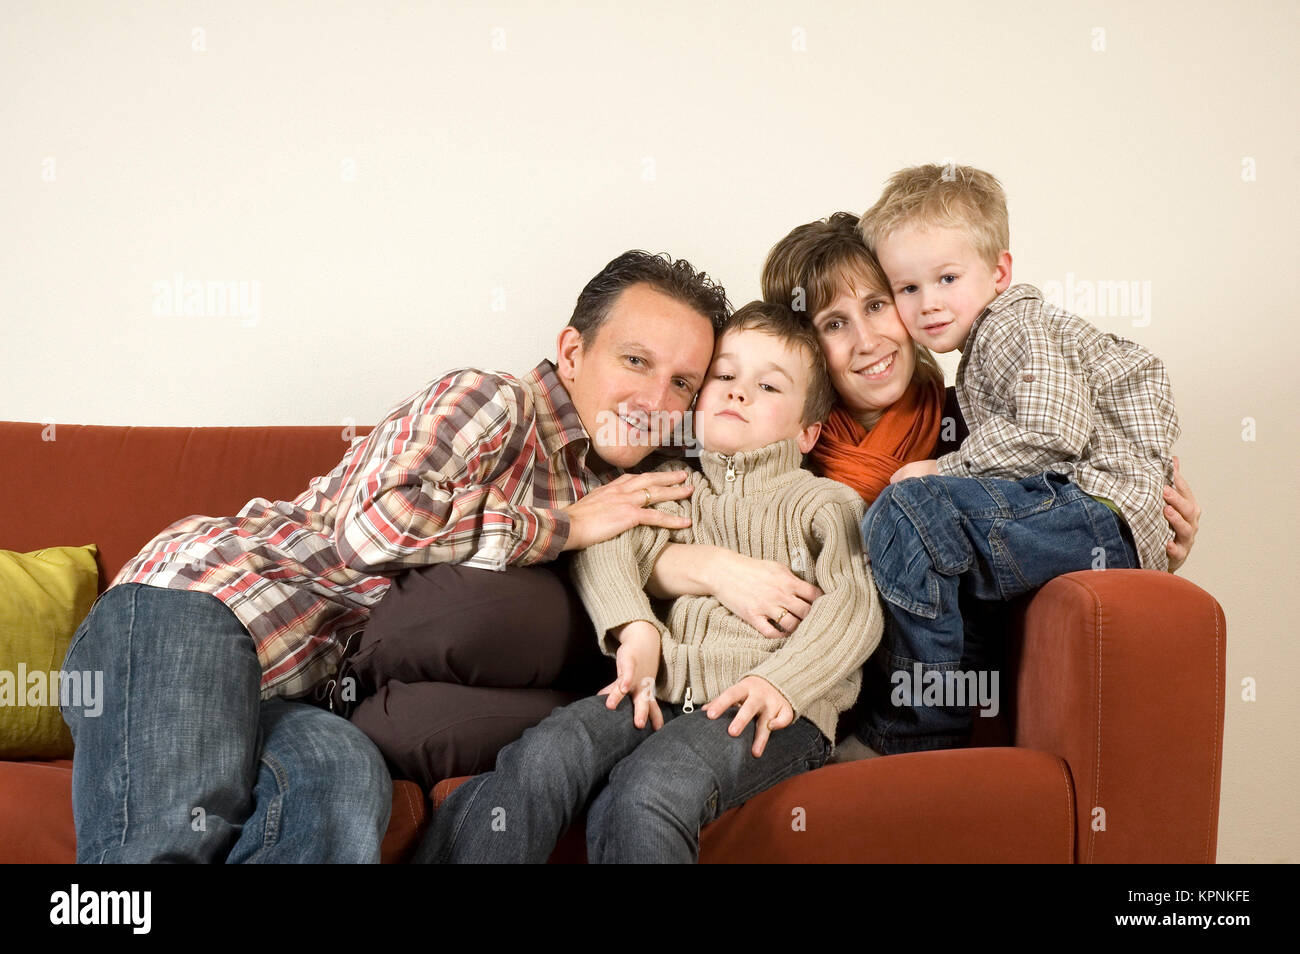 Family On A Couch 4 - Stock Image